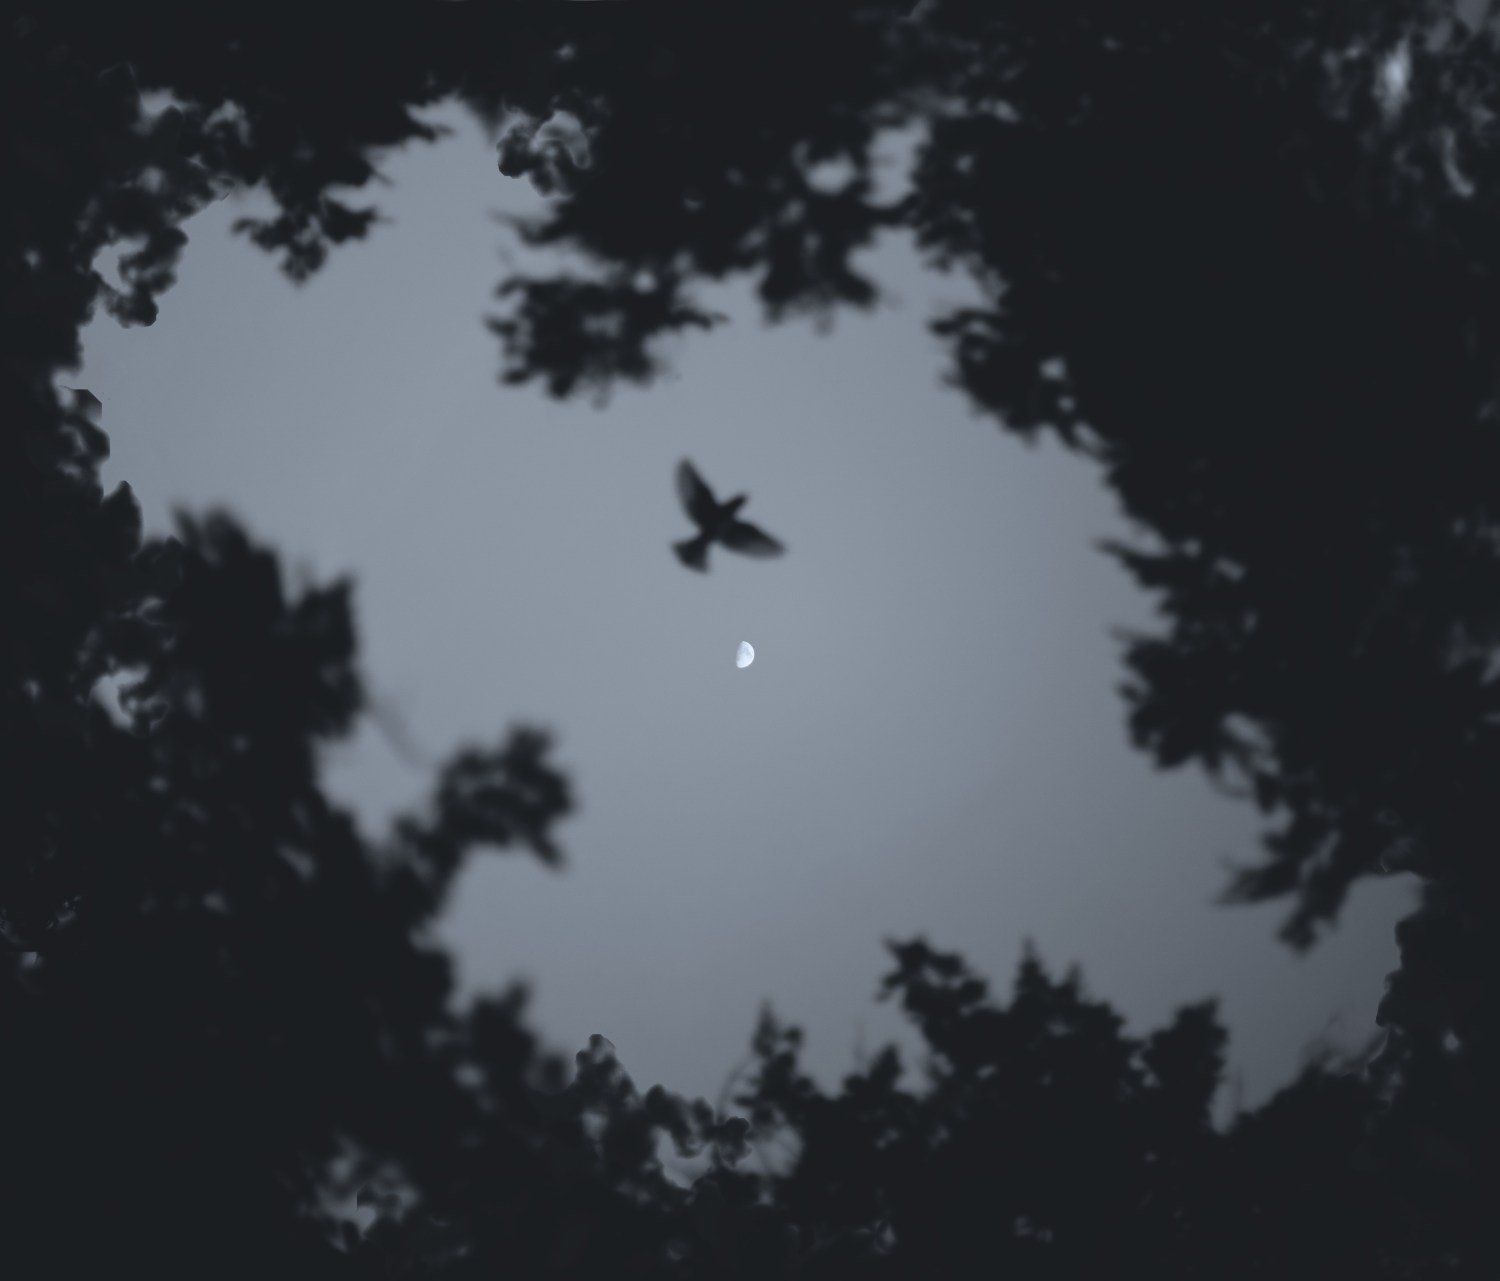 Low Angle Photo of Bird Flying during Night